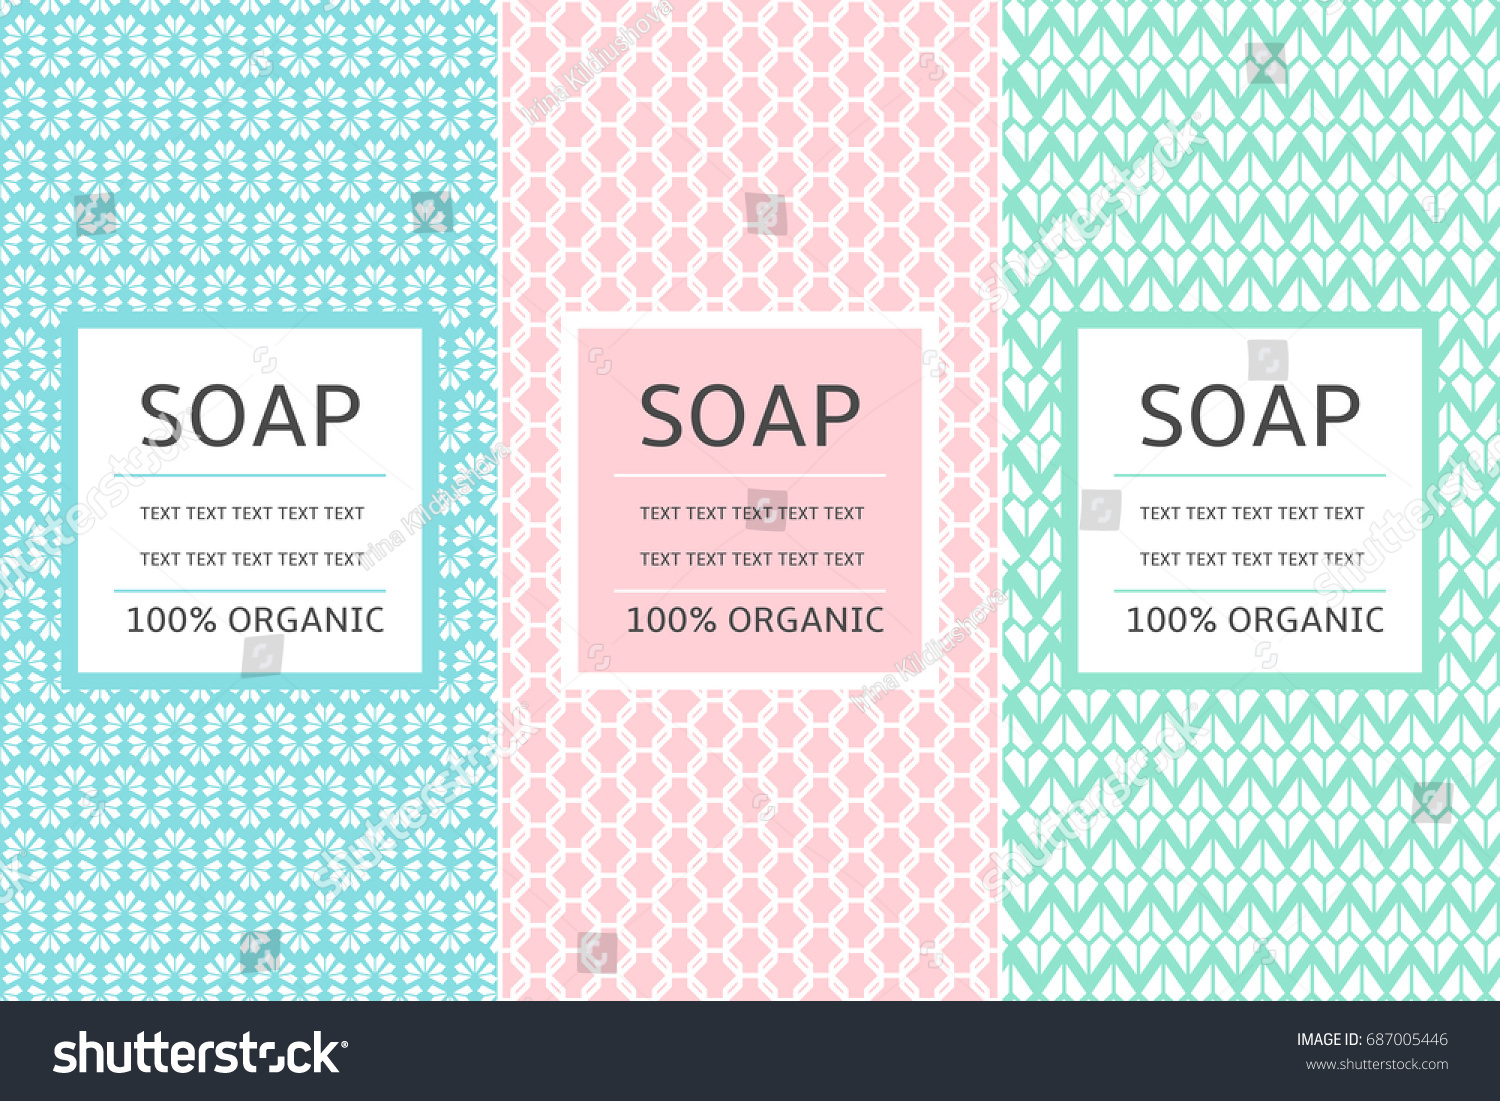 Cosmetic Packaging Set Design Template Vector Stock Vector HD ...